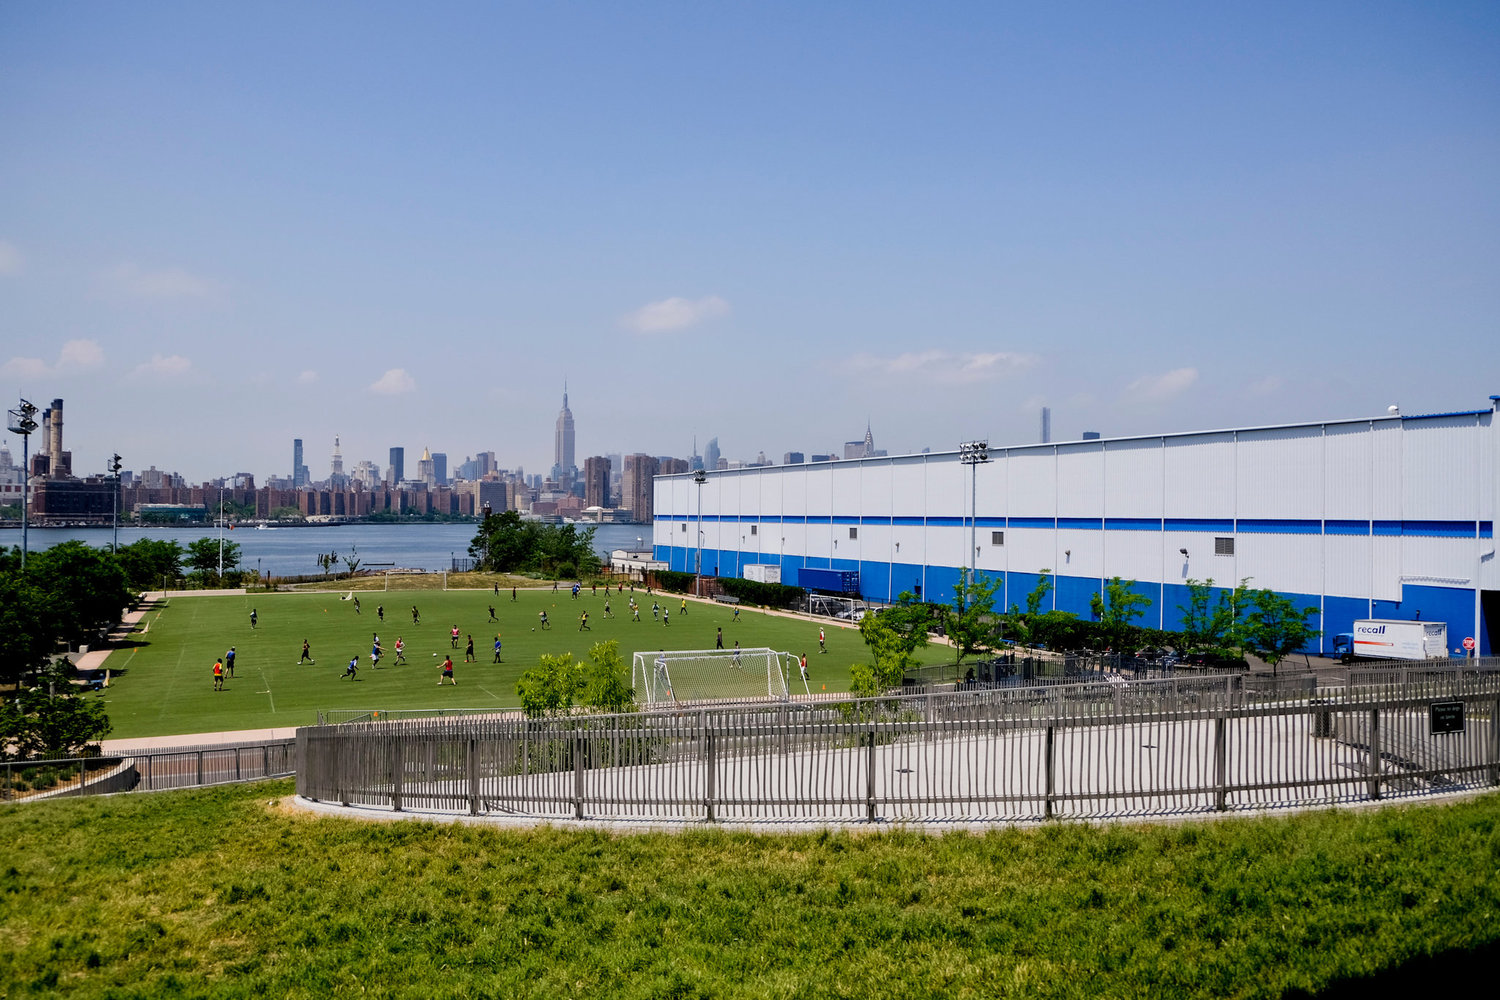 Abutting the waterfront in Williamsburg, the Bushwick Inlet Park consists of a five-acre playing field on what used to be a lot for rental trucks.